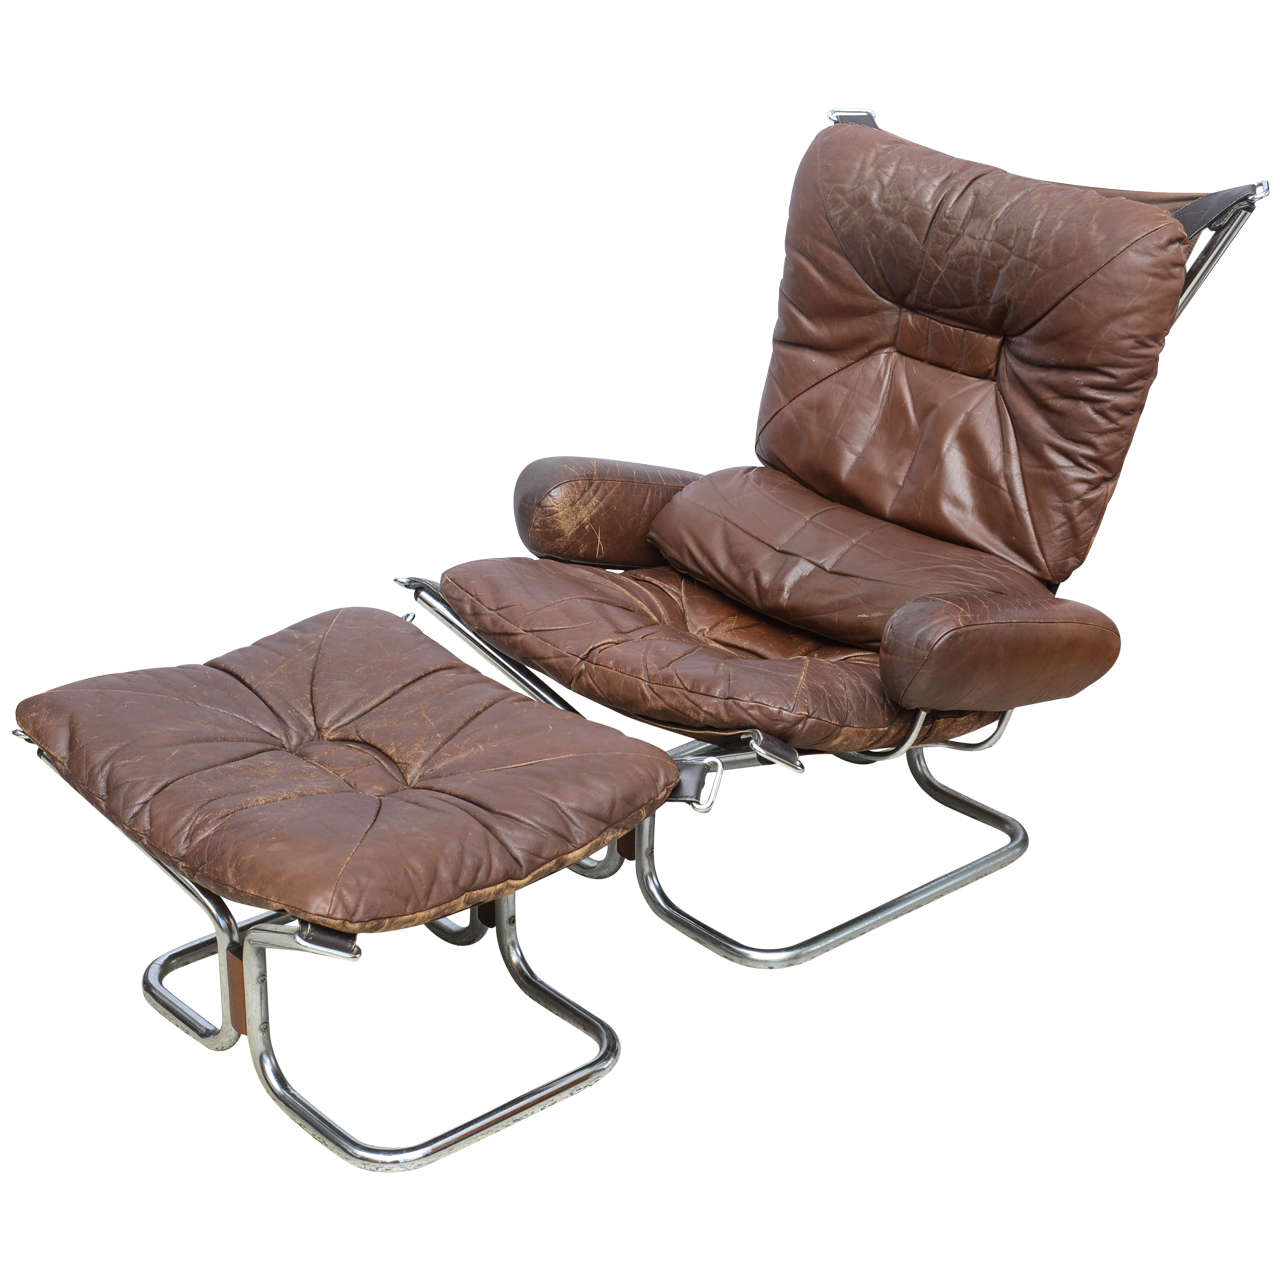 Leather Chairs And Ottomans Sale Ingmar Relling For Westnofa Chrome And Leather Chair And Ottoman Norway 1970s